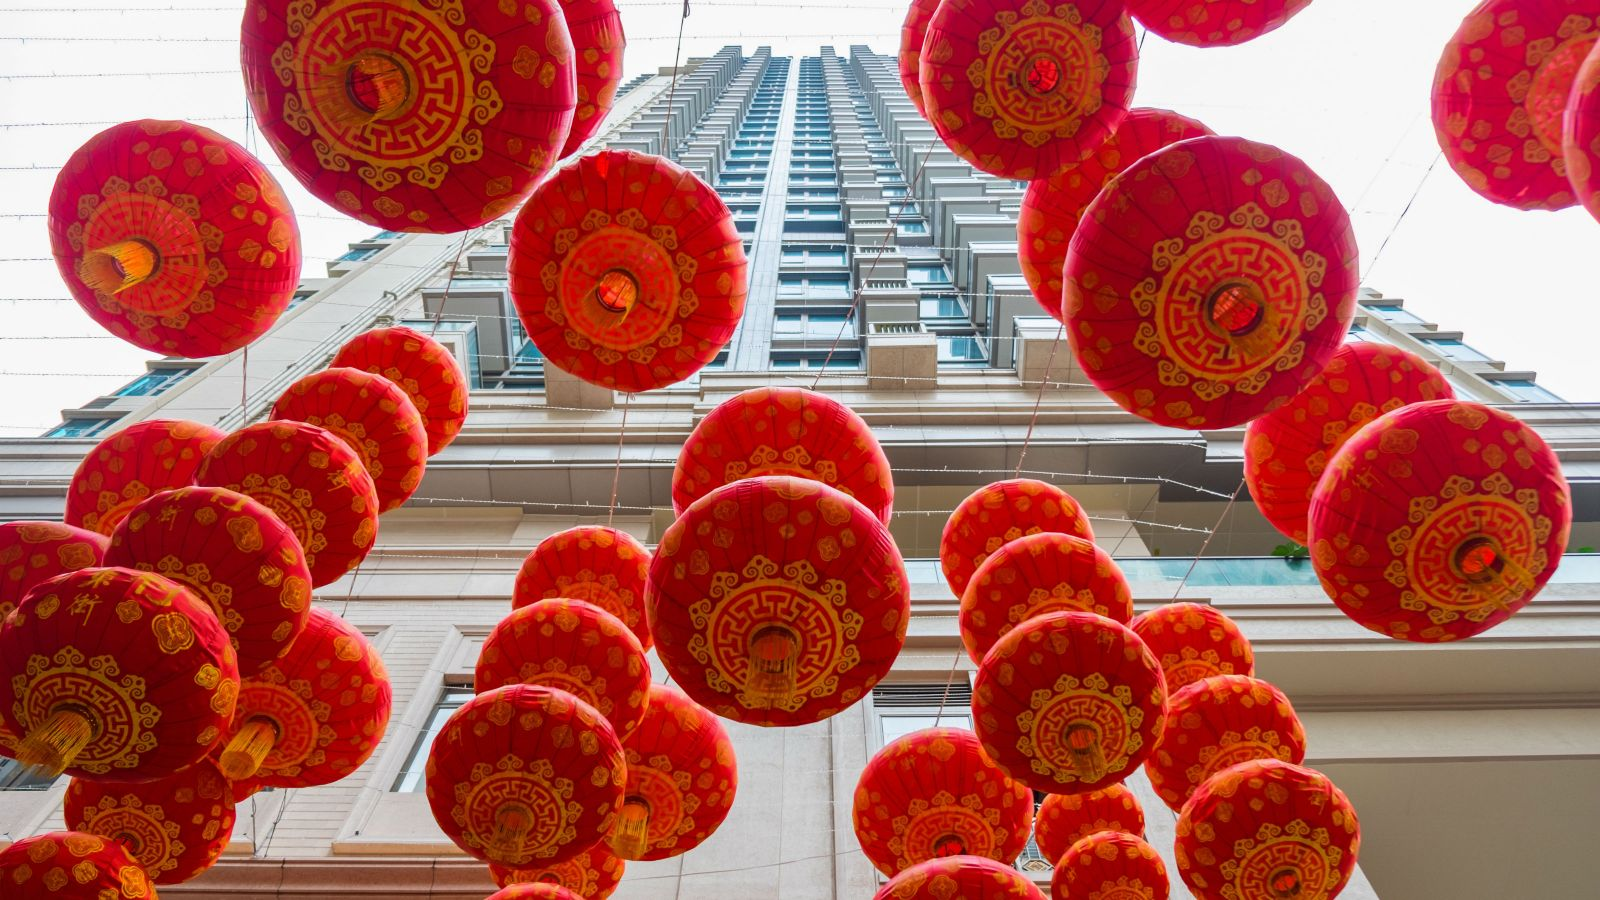 Red Chinese lanterns suspended overhead in front of a tall residential building.